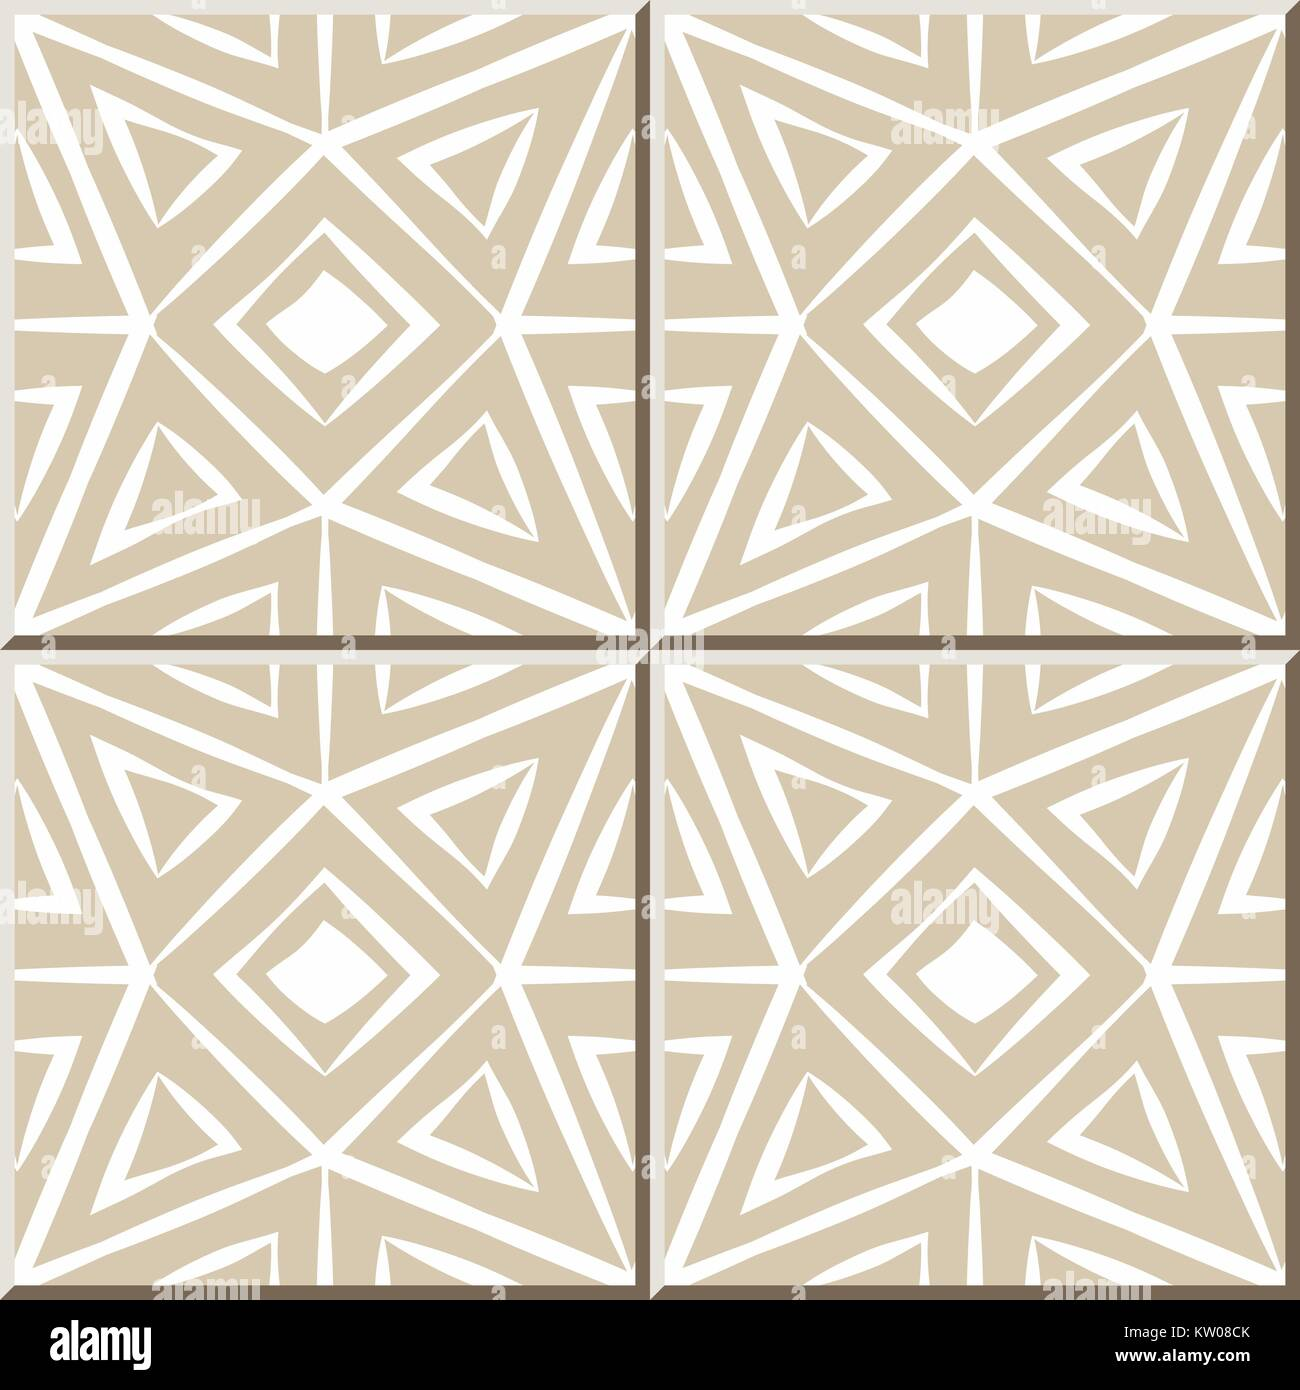 Ceramic tile pattern of octagon triangle check cross geometry stock ceramic tile pattern of octagon triangle check cross geometry dailygadgetfo Image collections